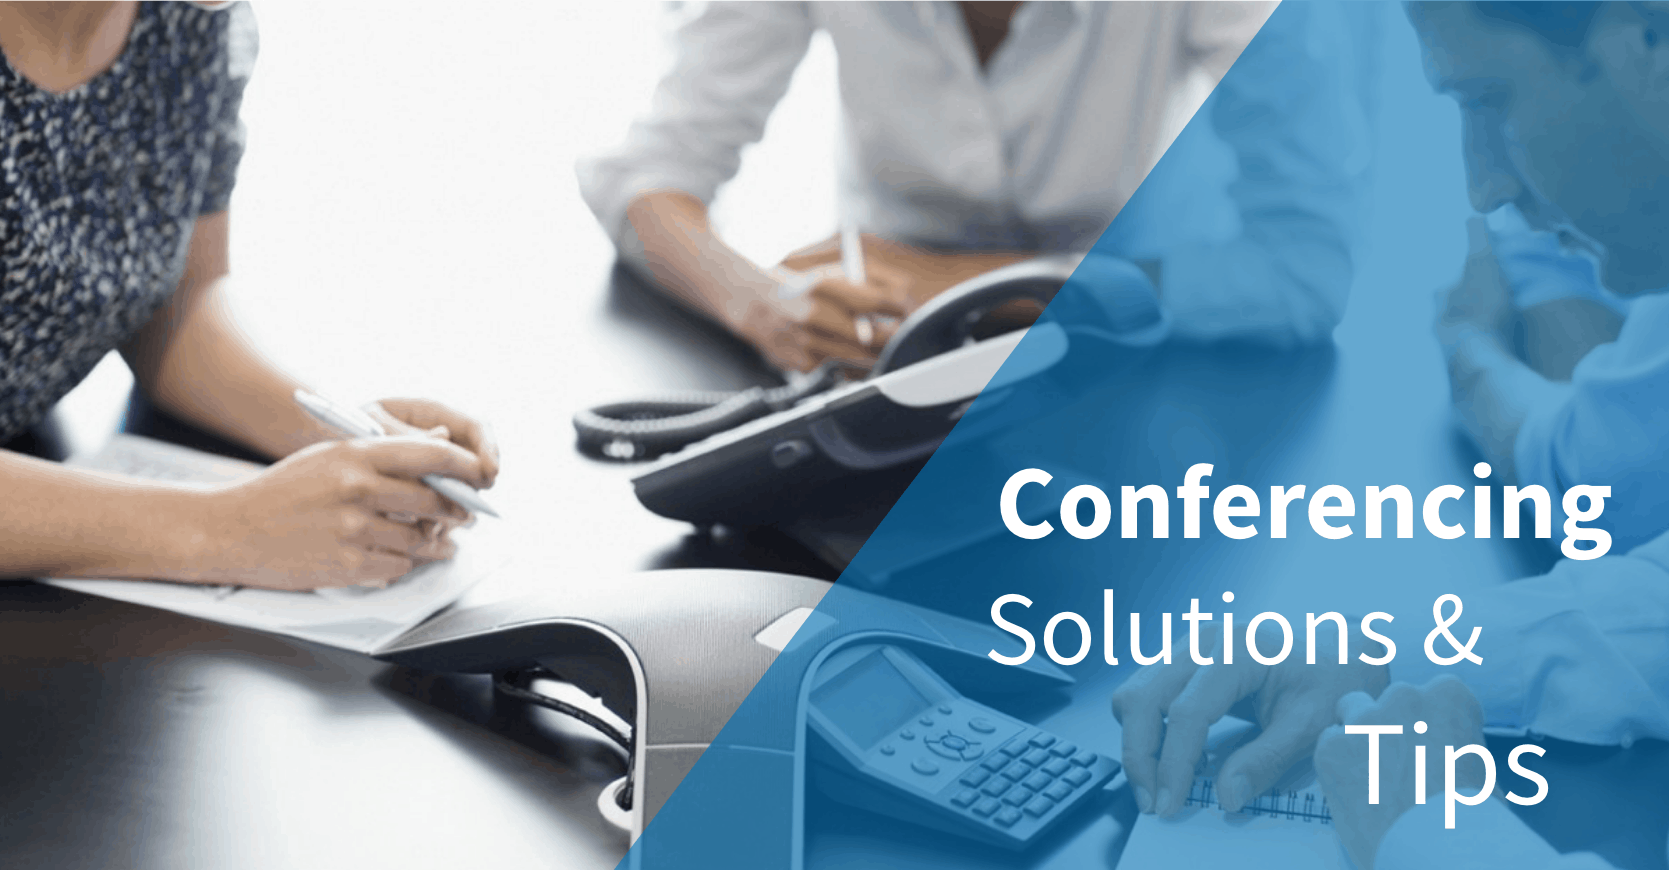 Conferencing Solutions Banner